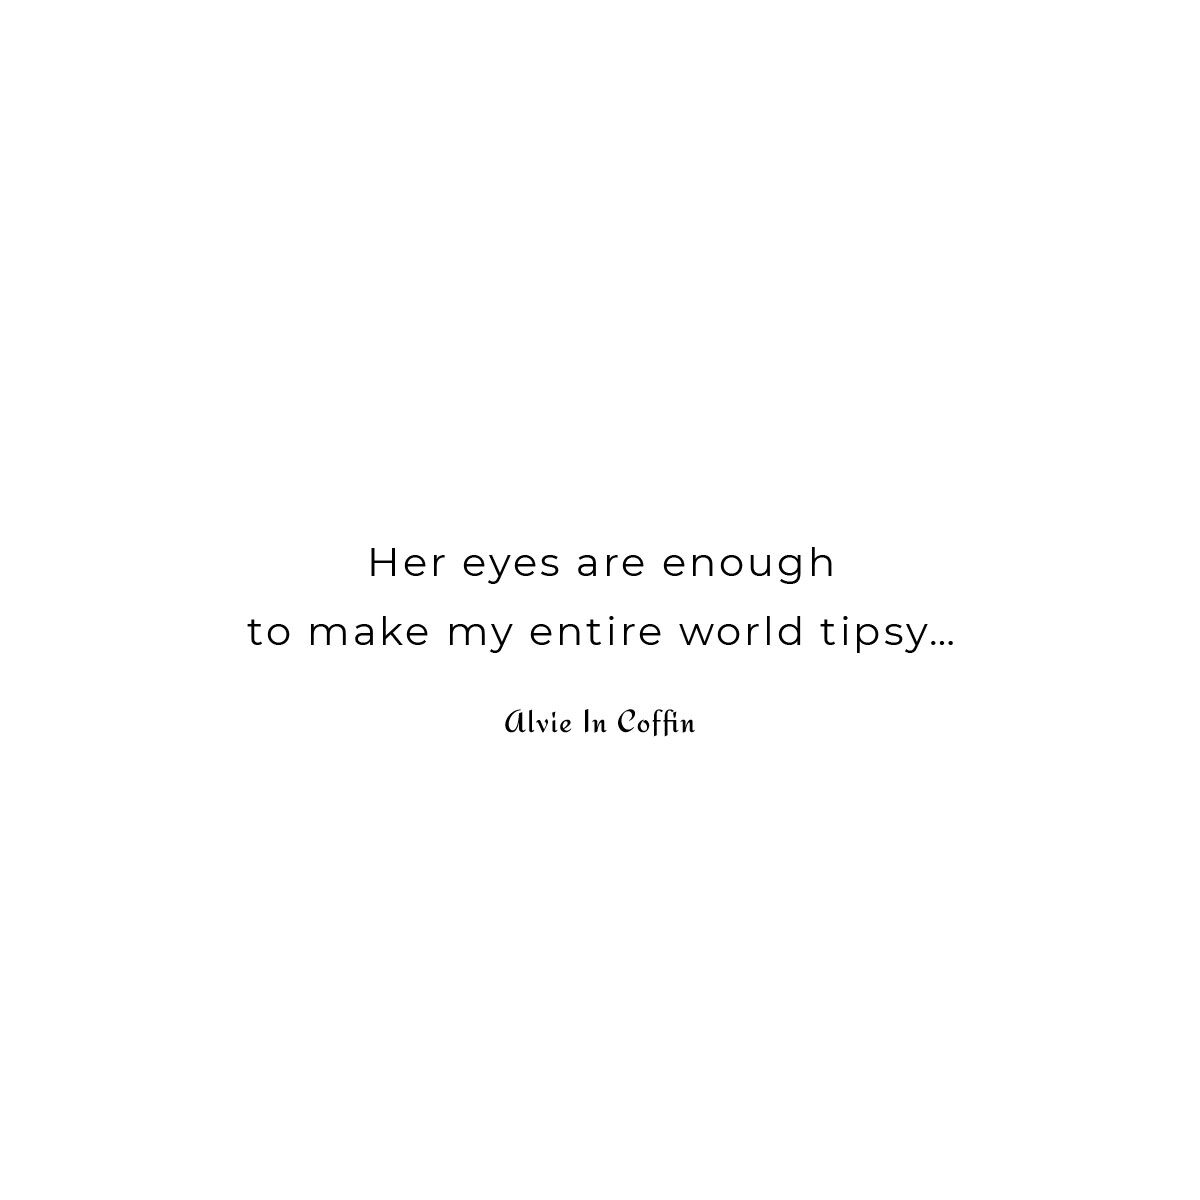 Magic of her eyes is a short romantic poem